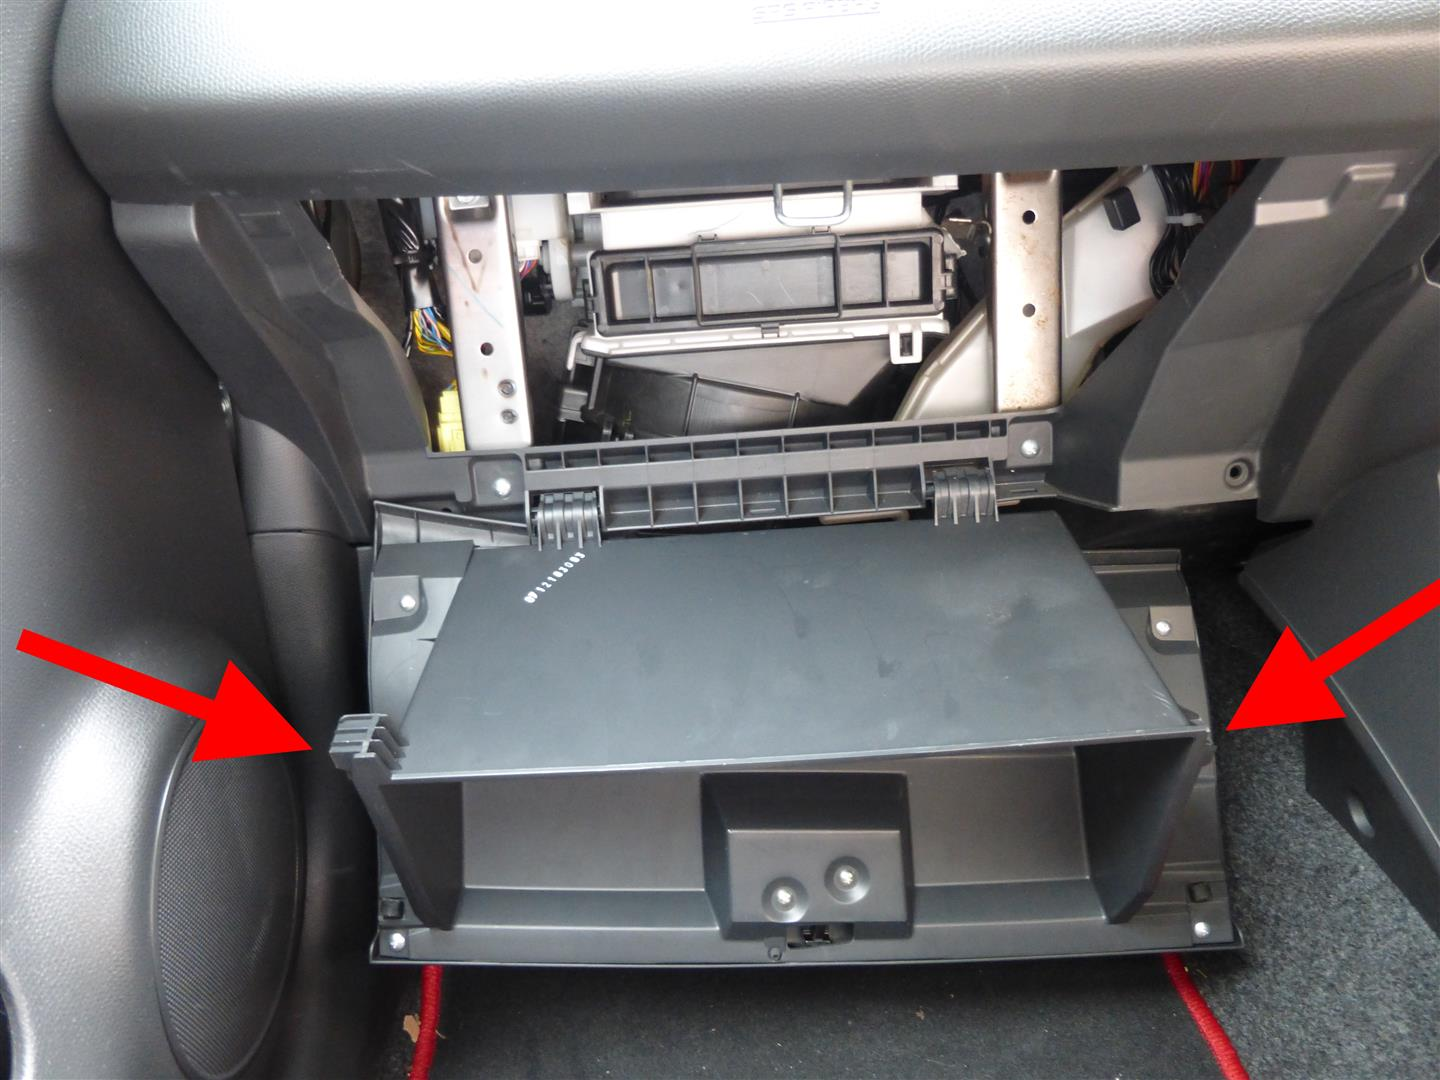 Fitting An Aftermarket Stereo To The Suzuki Swift Datahamster 2012 Wiring Diagram Glove Box